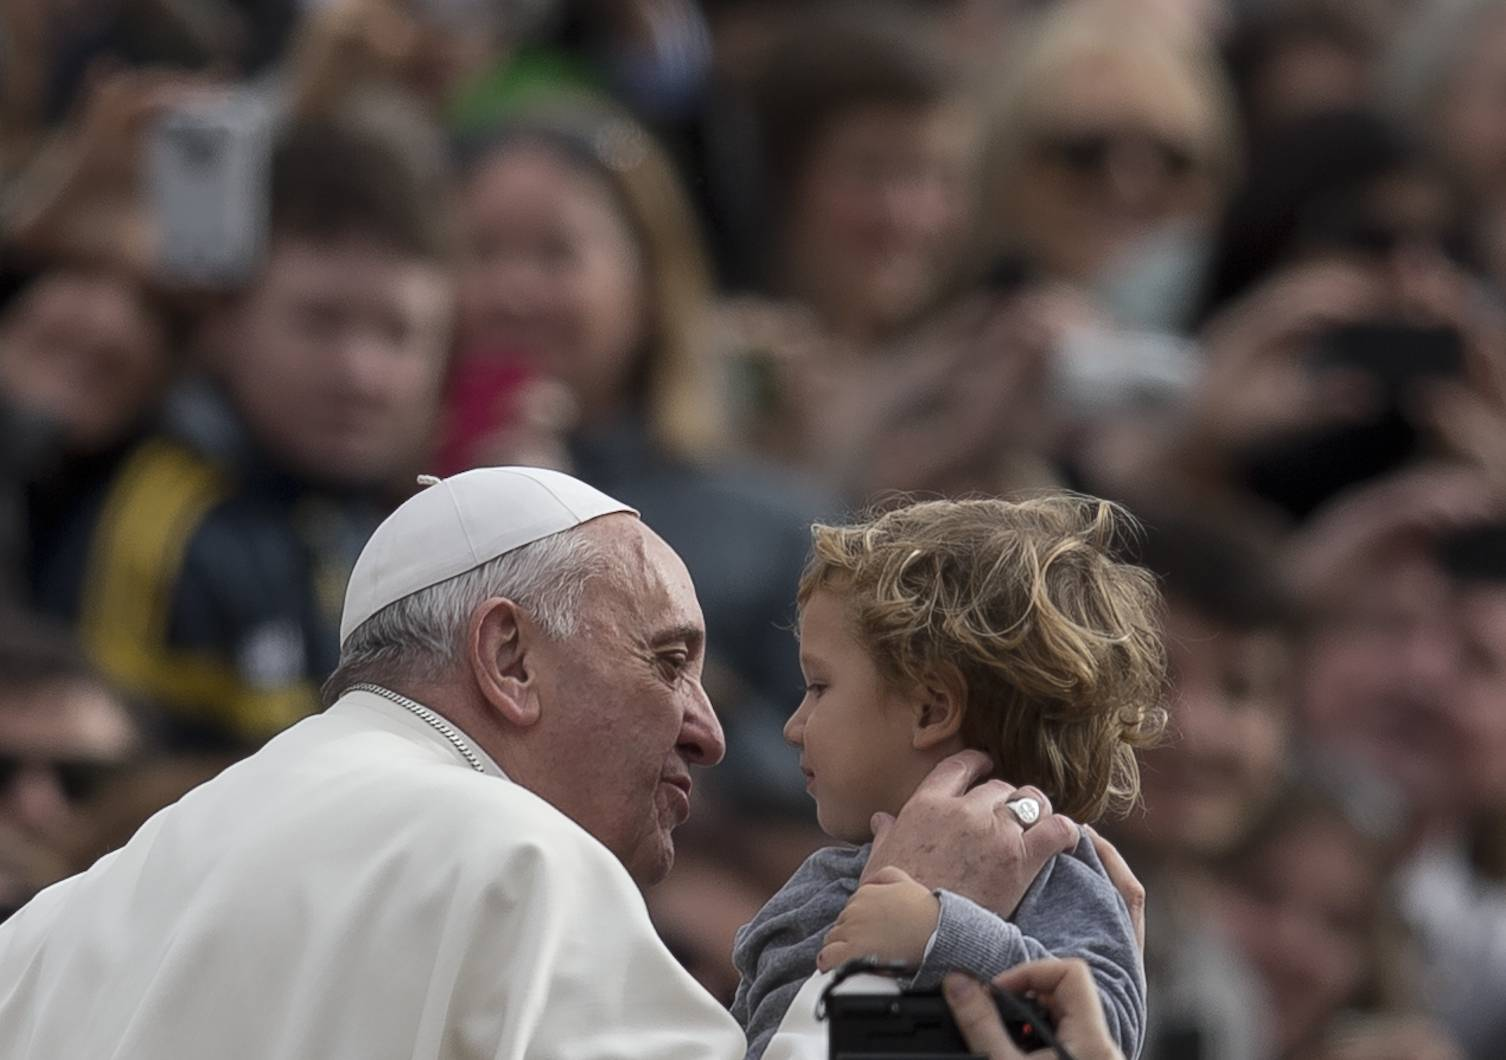 Pope Francis penned a new missive on the injustices of poverty Wednesday amid indications he is eyeing a major overhaul of the Vatican's financial house by creating a finance ministry to better serve the church.